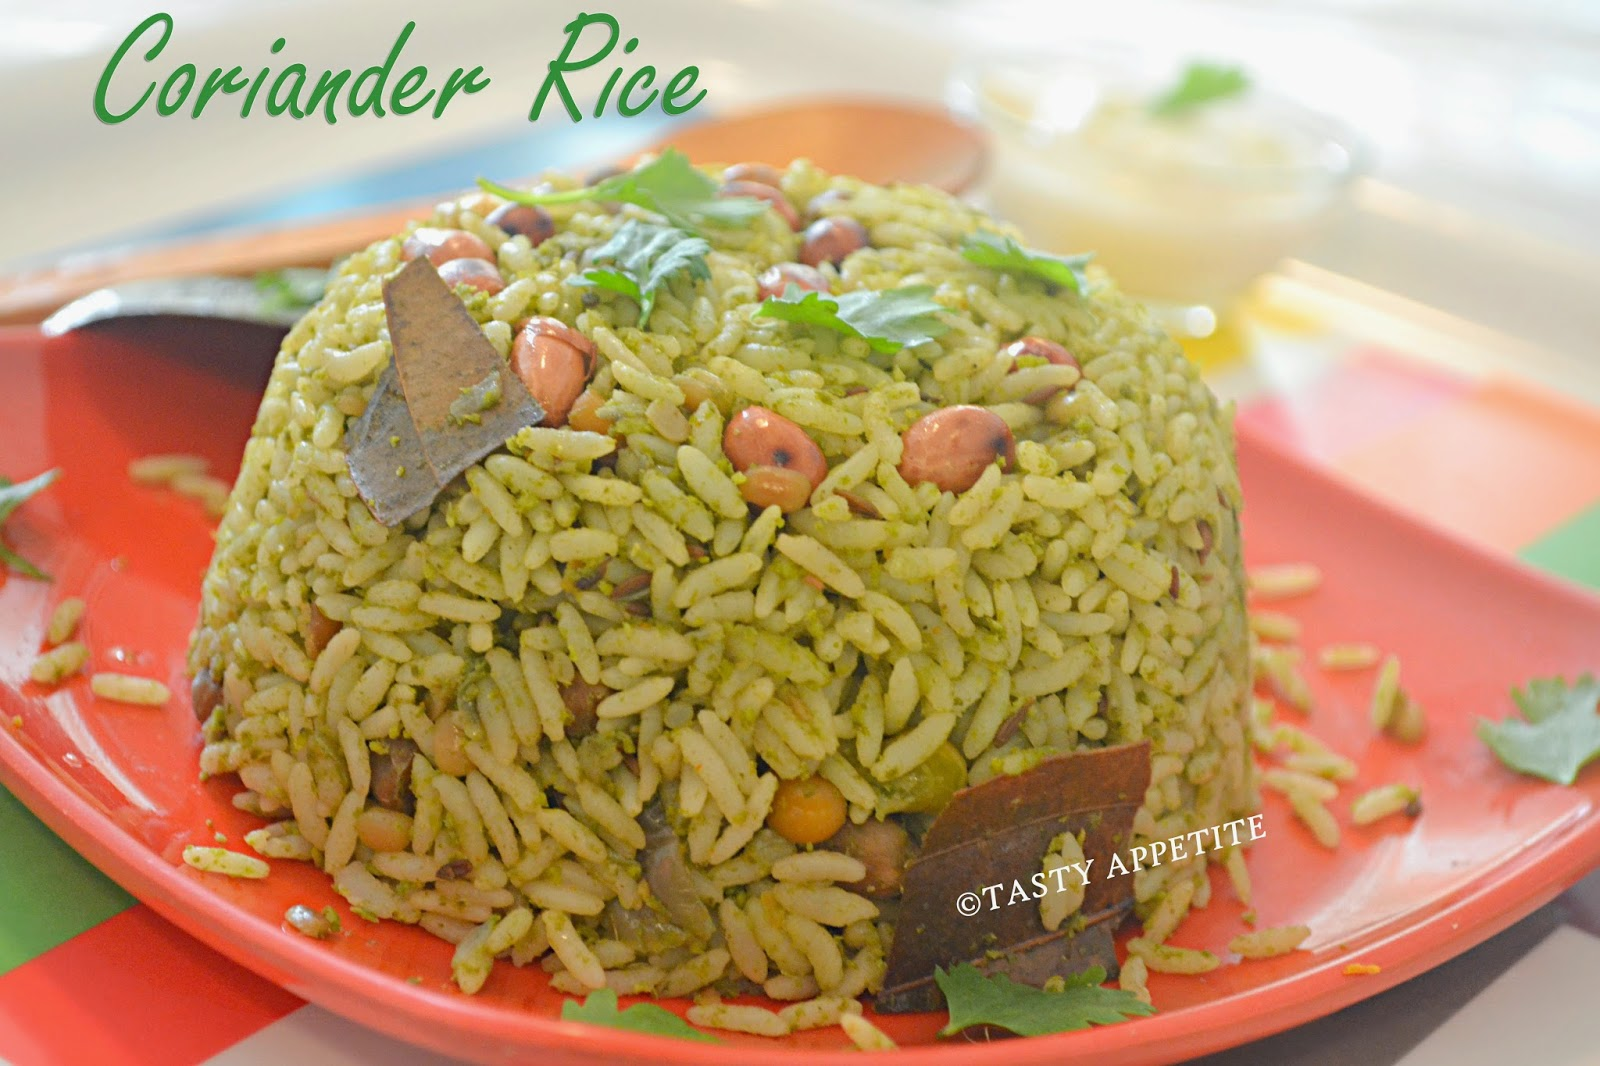 Here Goes The Very Simple And Quick Rice Recipe With Fresh Coriander Leaves